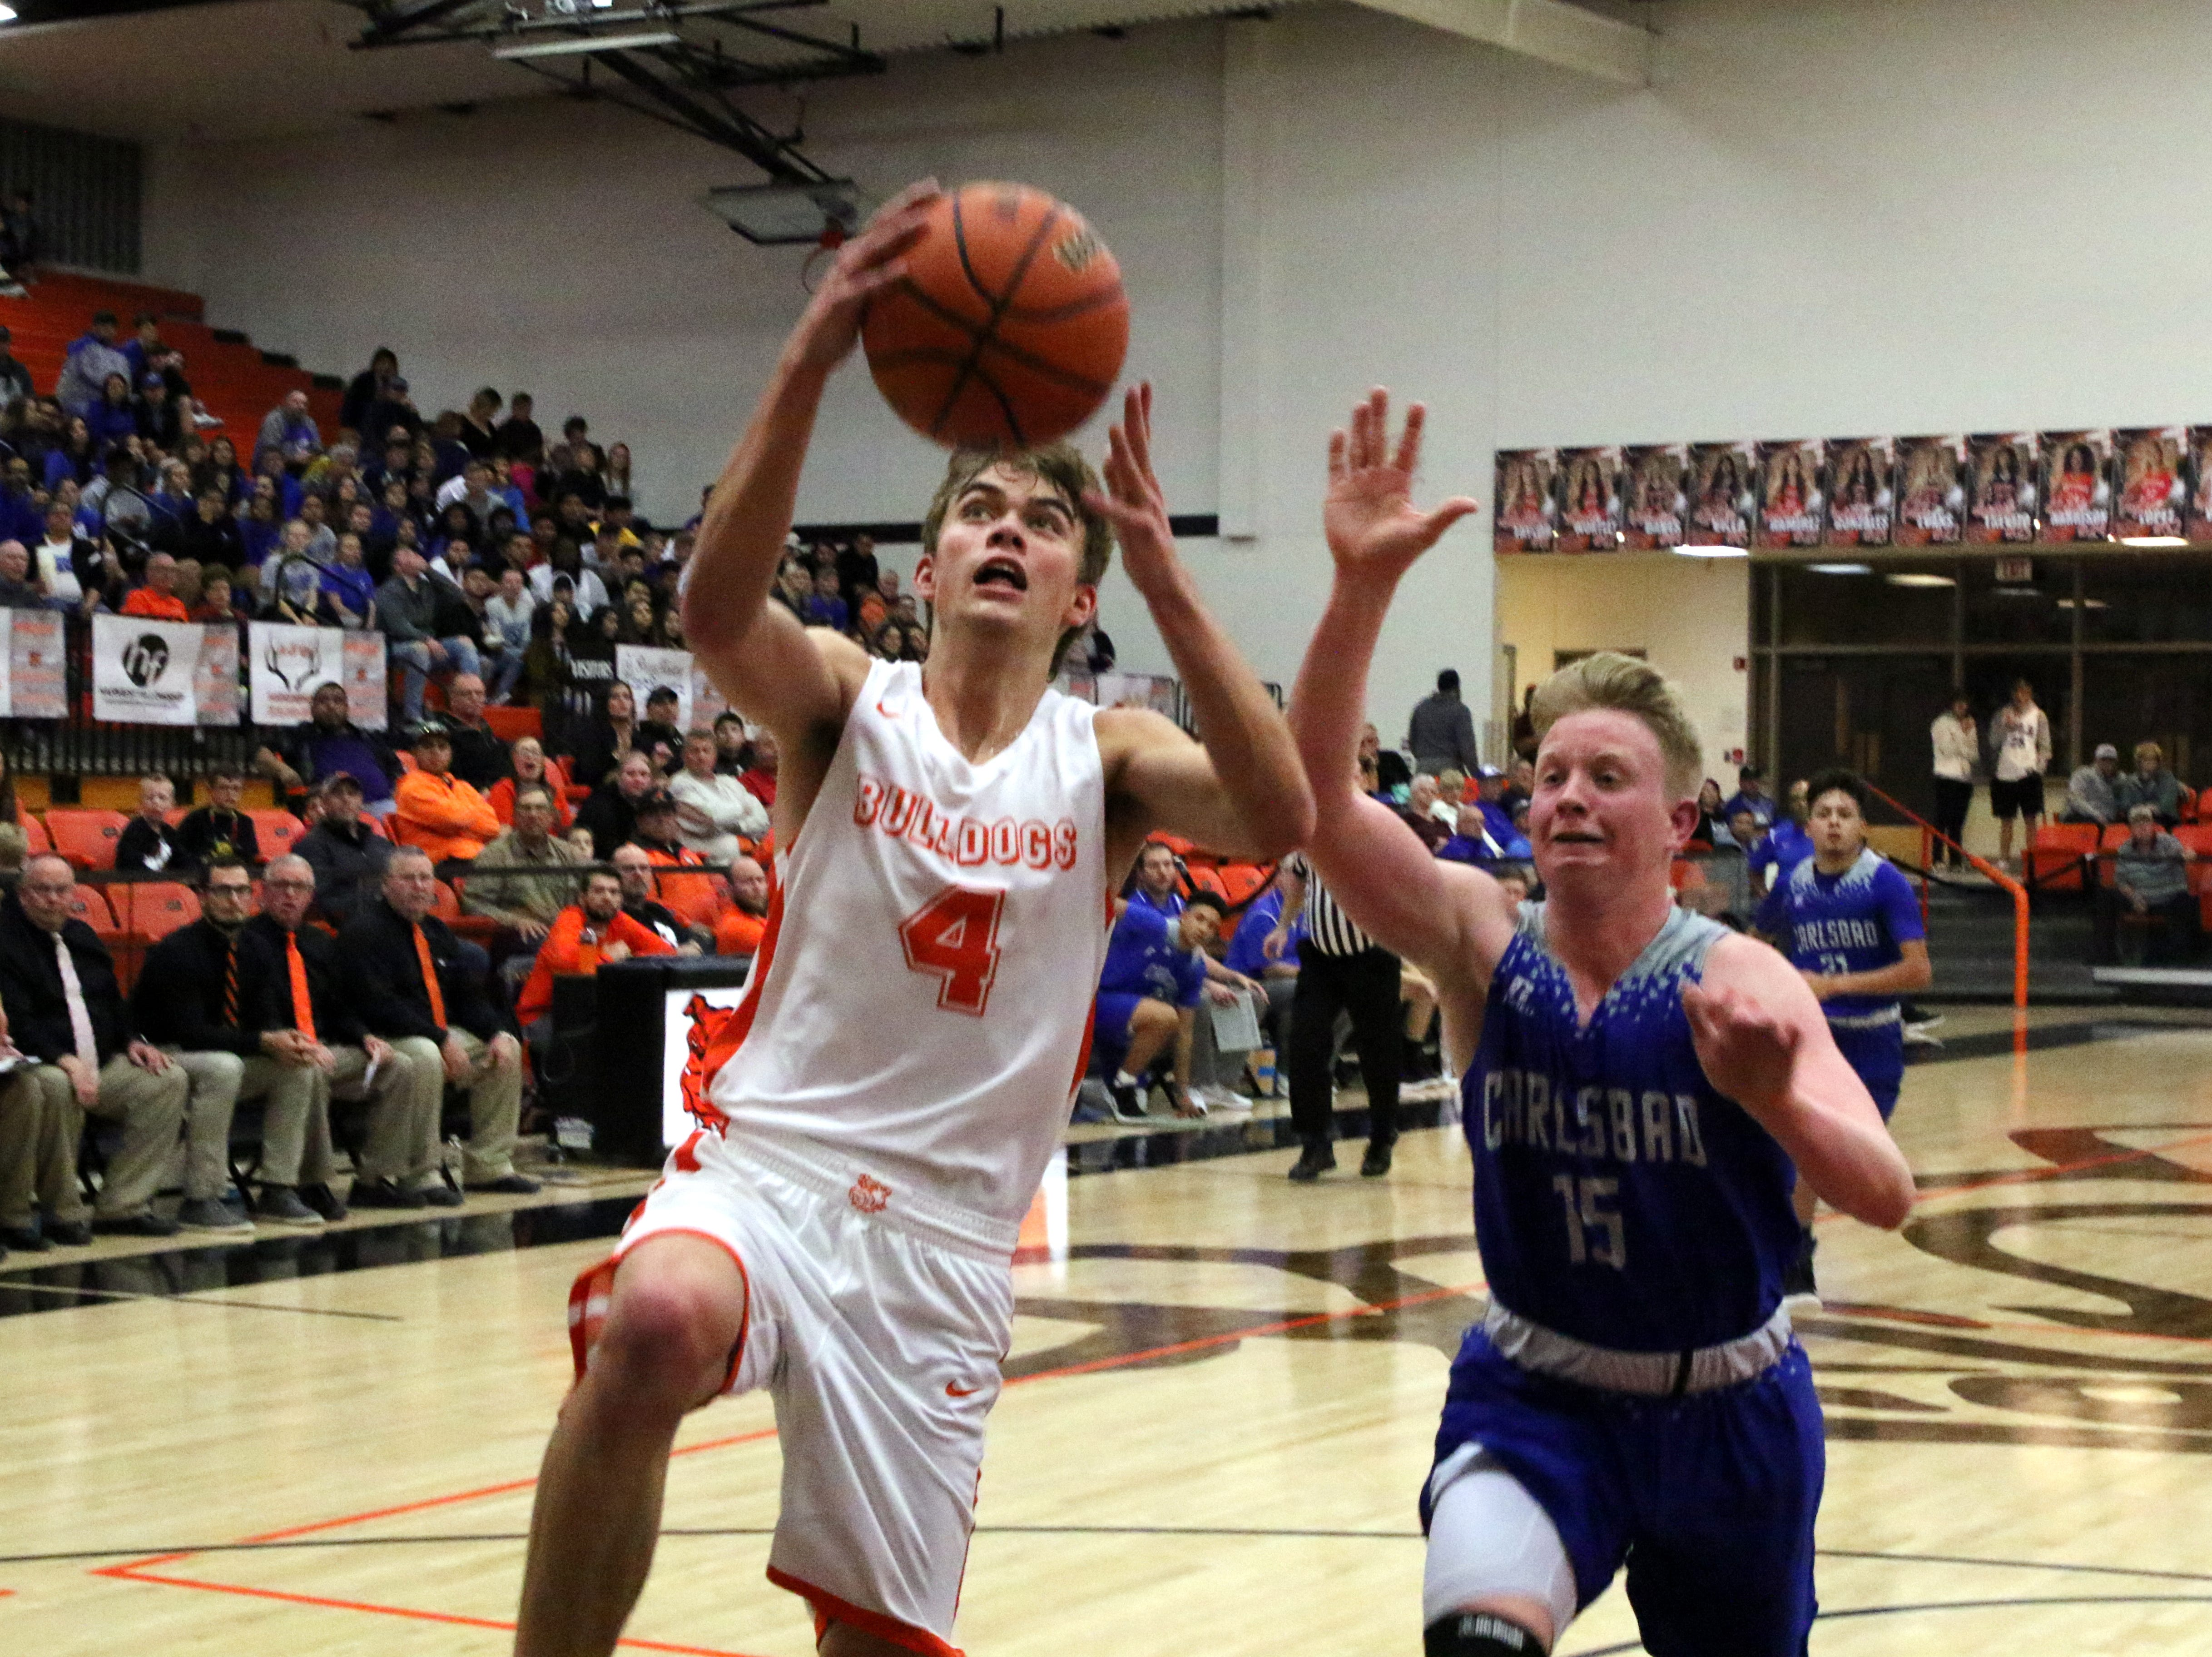 Artesia's Kale Mauritsen goes for a fastbreak layup while Carlsbad's Andrew Miller tries to chase him down during Friday's game.